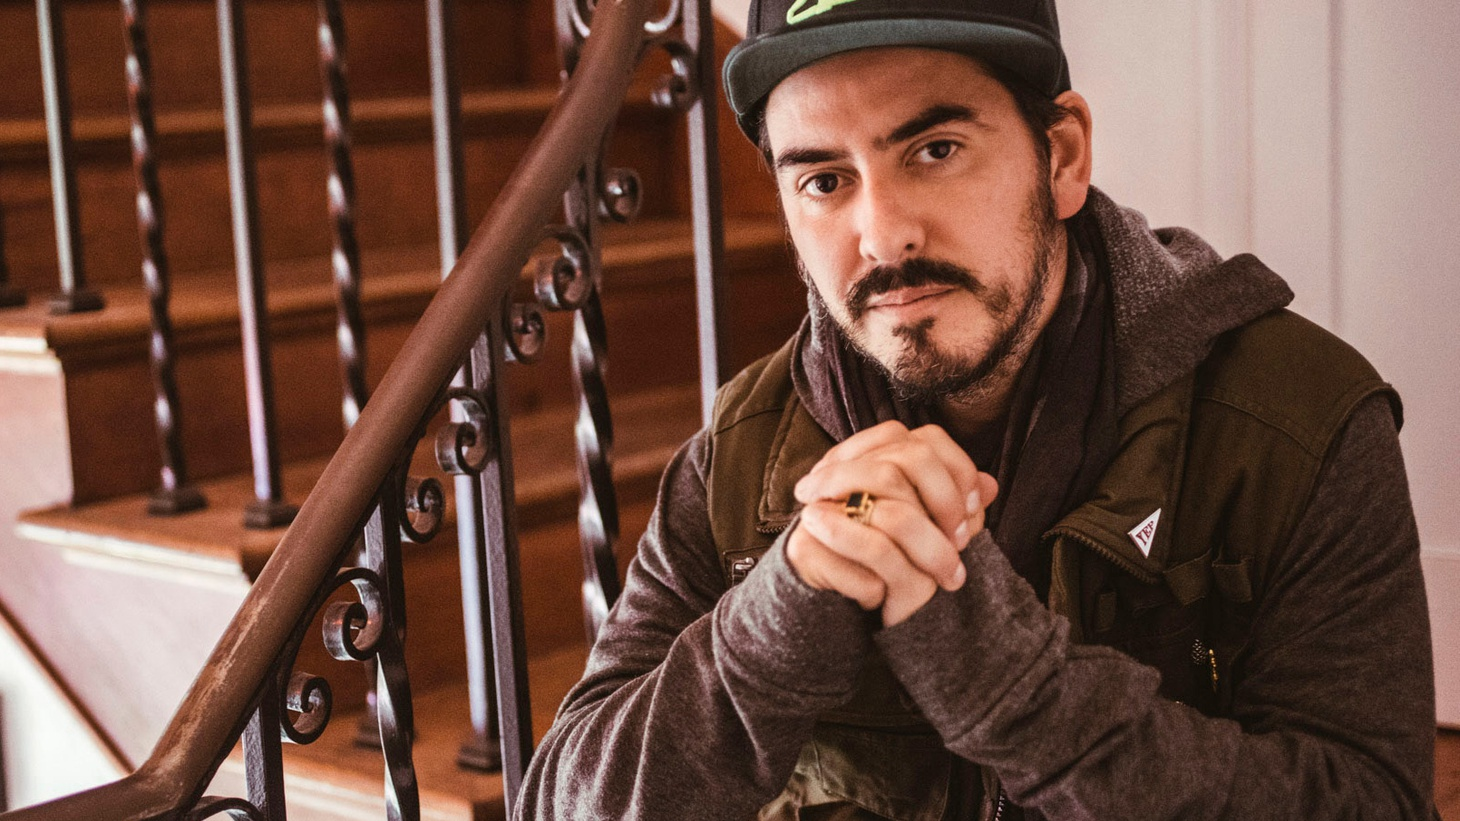 Dhani Harrison is rock royalty and, after ten years of releasing music as part of a band, the son of the late George Harrison is finally striking out with his debut album under his own name. (10am)